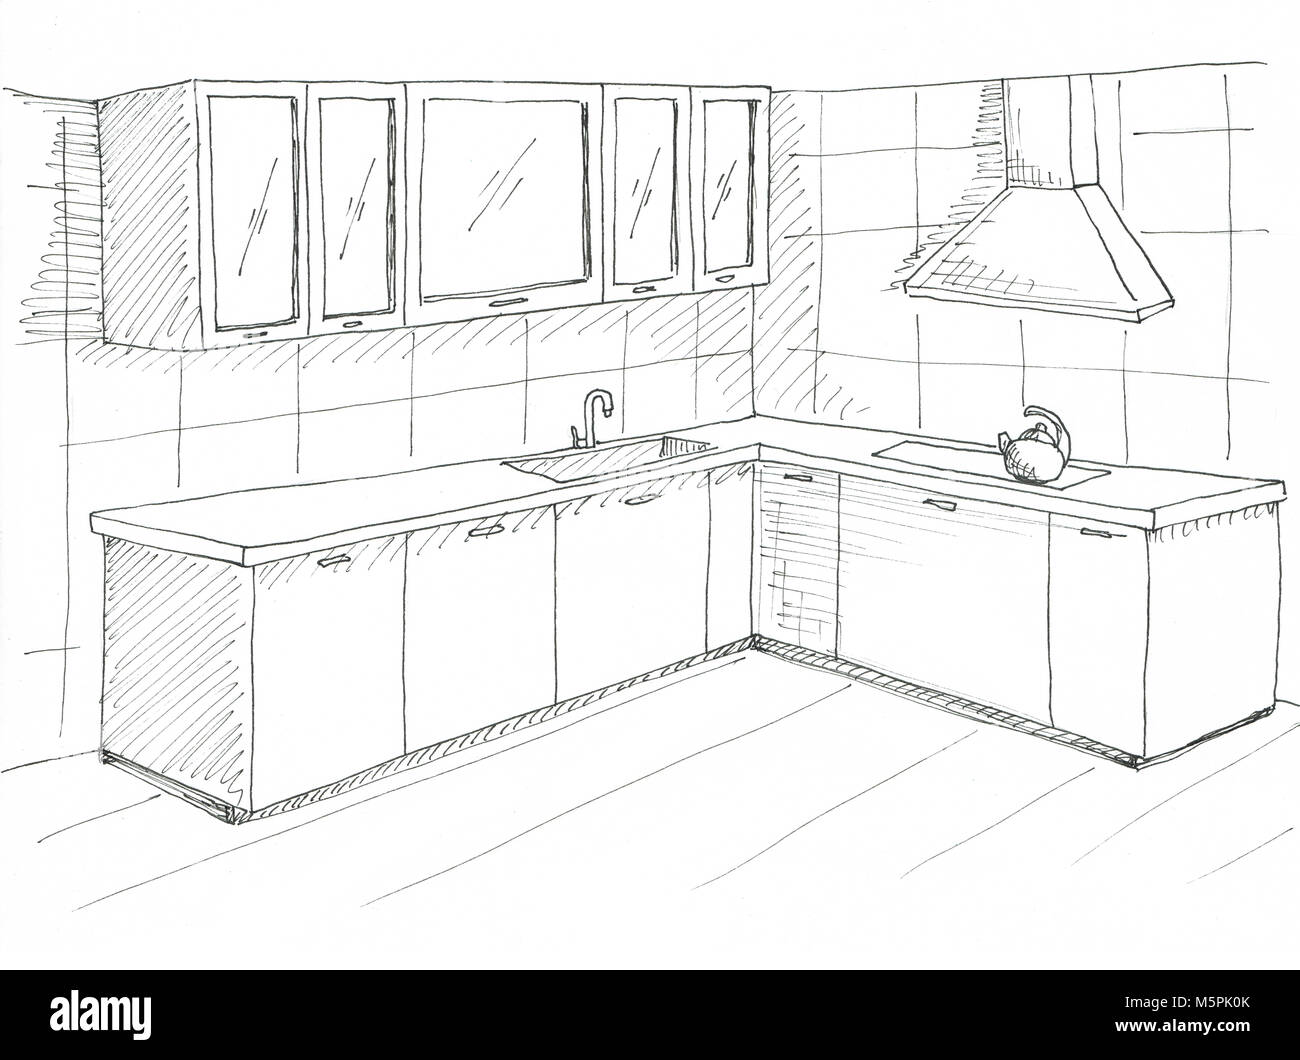 Hand Drawn Kitchen Furniture Sketch With A Pen Stock Photo Alamy